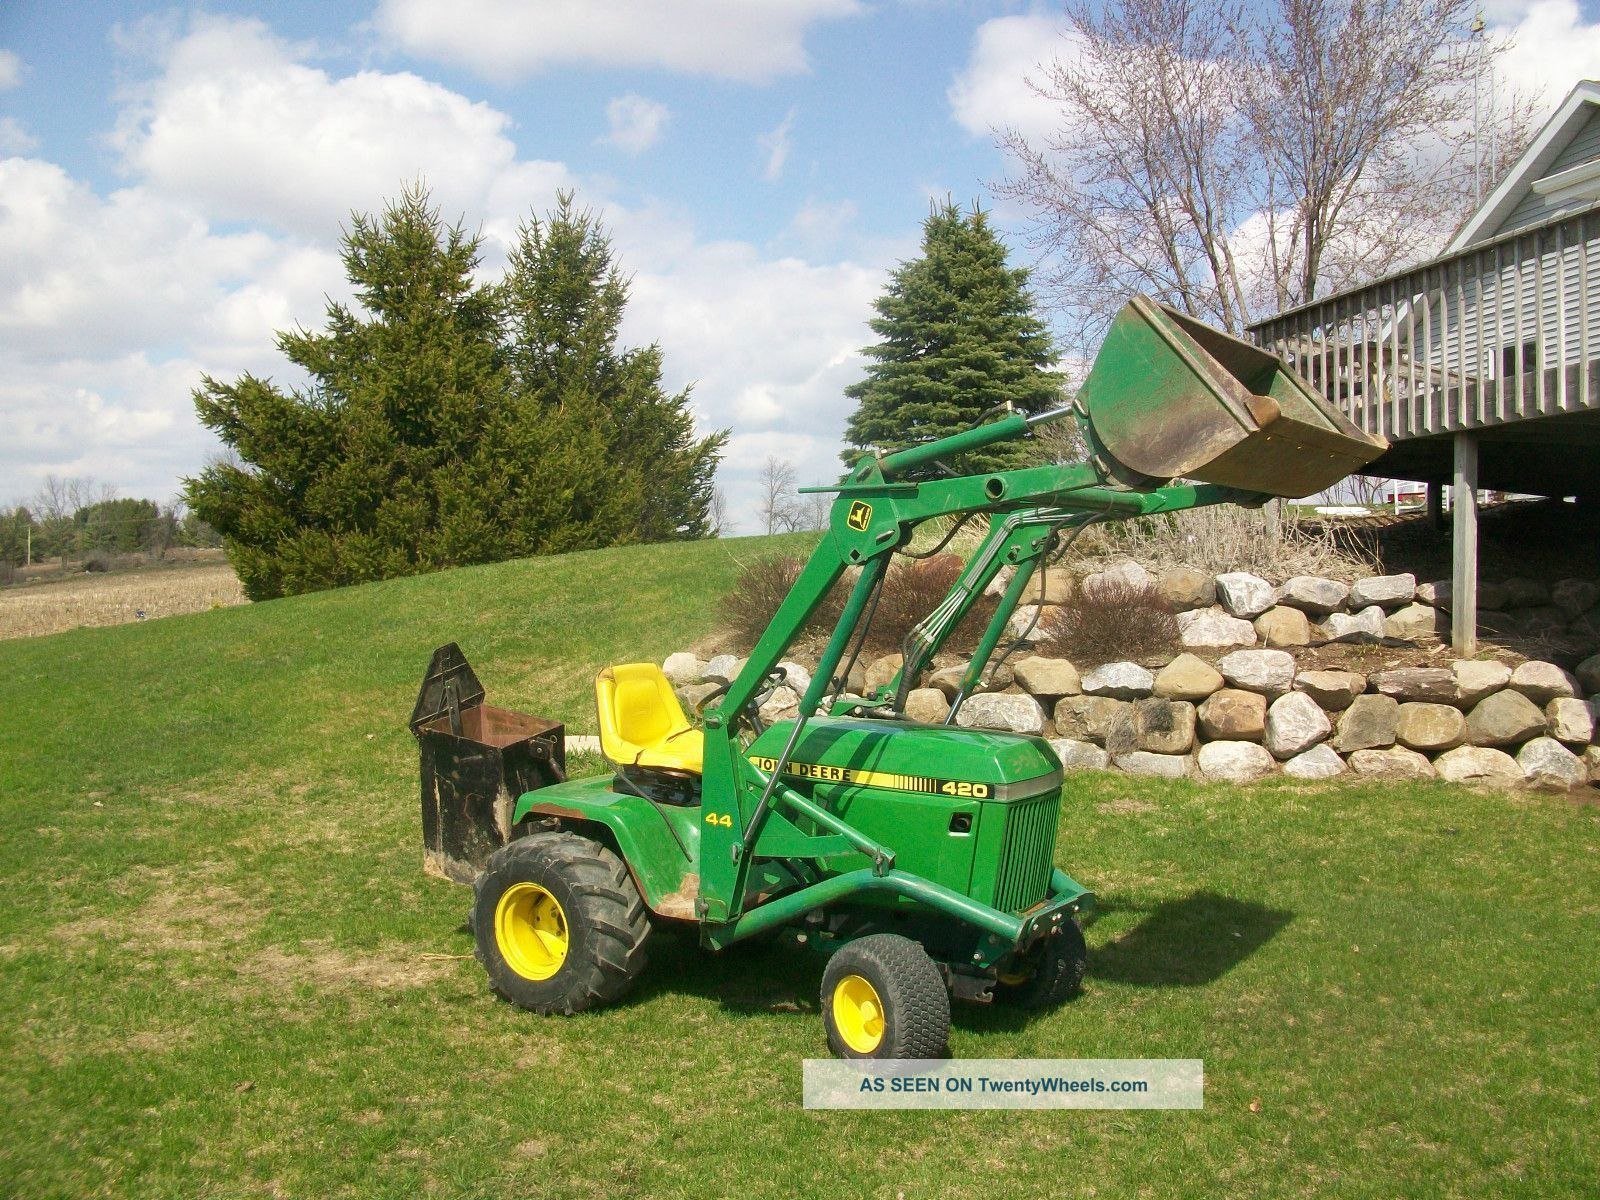 lawn tractor garden and diagram john deck mower deere parts photoshot for wiring latest